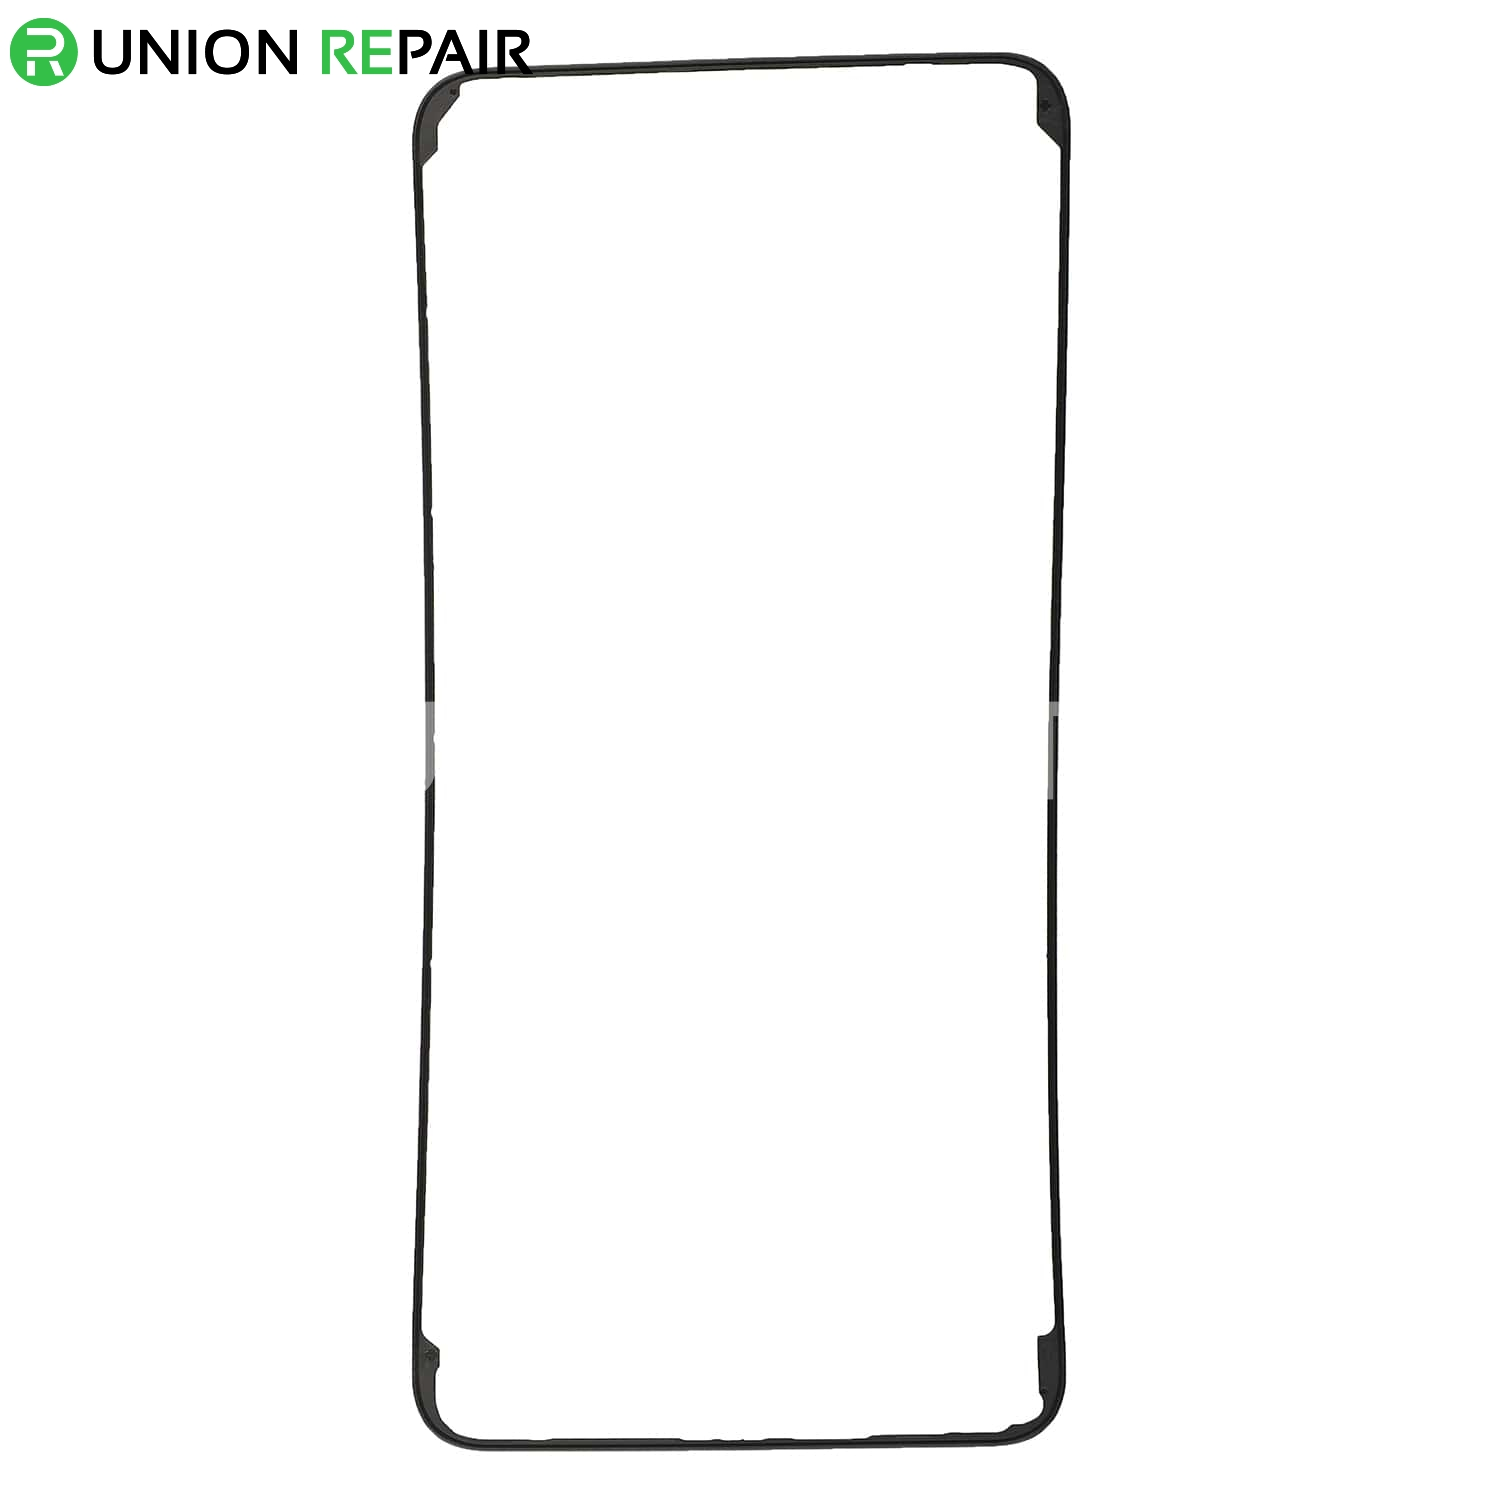 Replacement for Huawei P10 Plus Front Housing Frame - Black